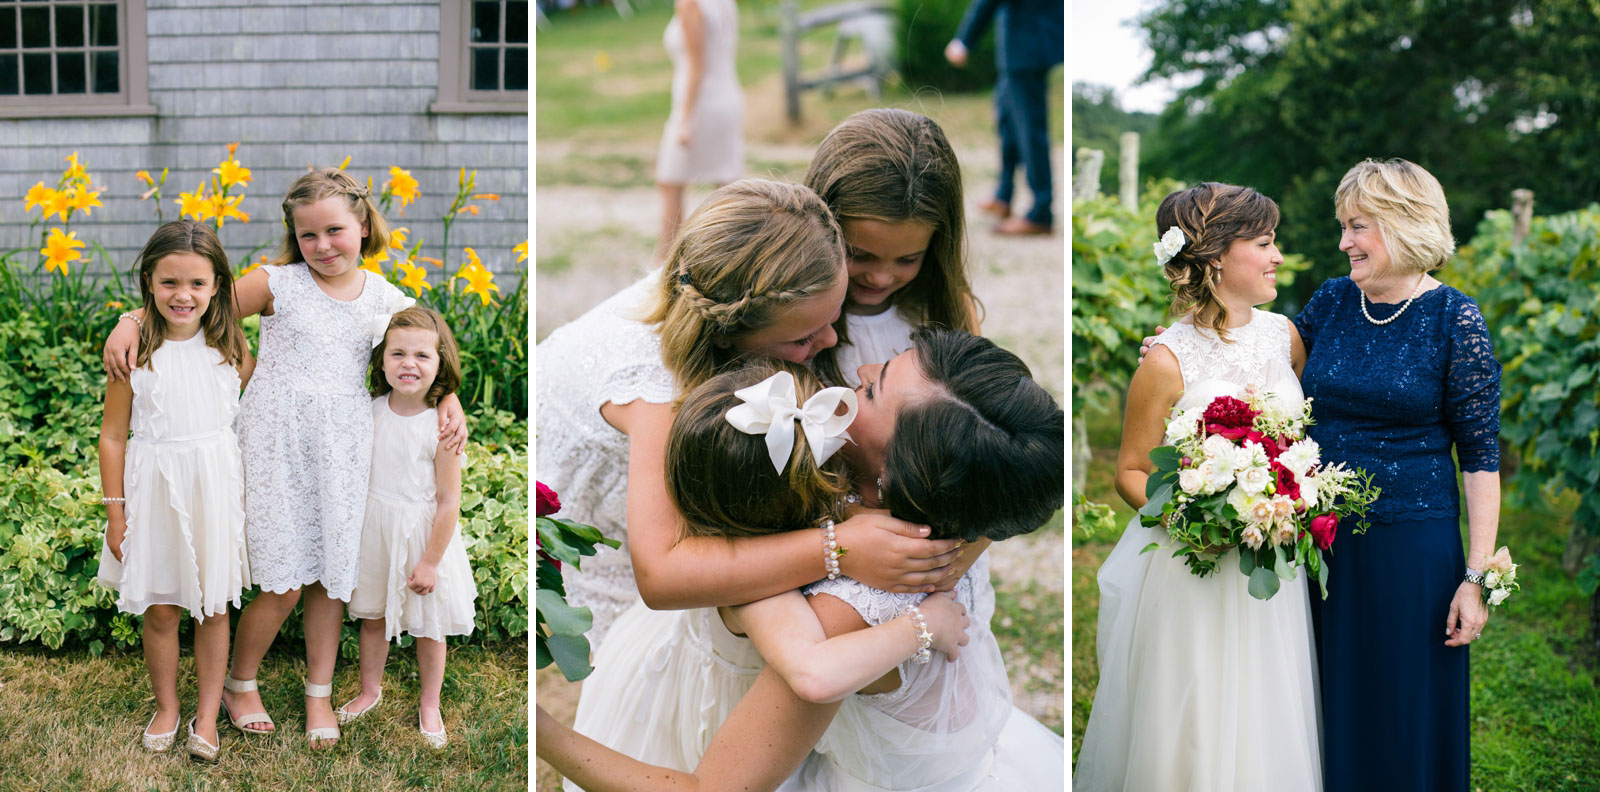 portrait of bride's little cousins in front of daffodils, playful portrait of bride and her mother